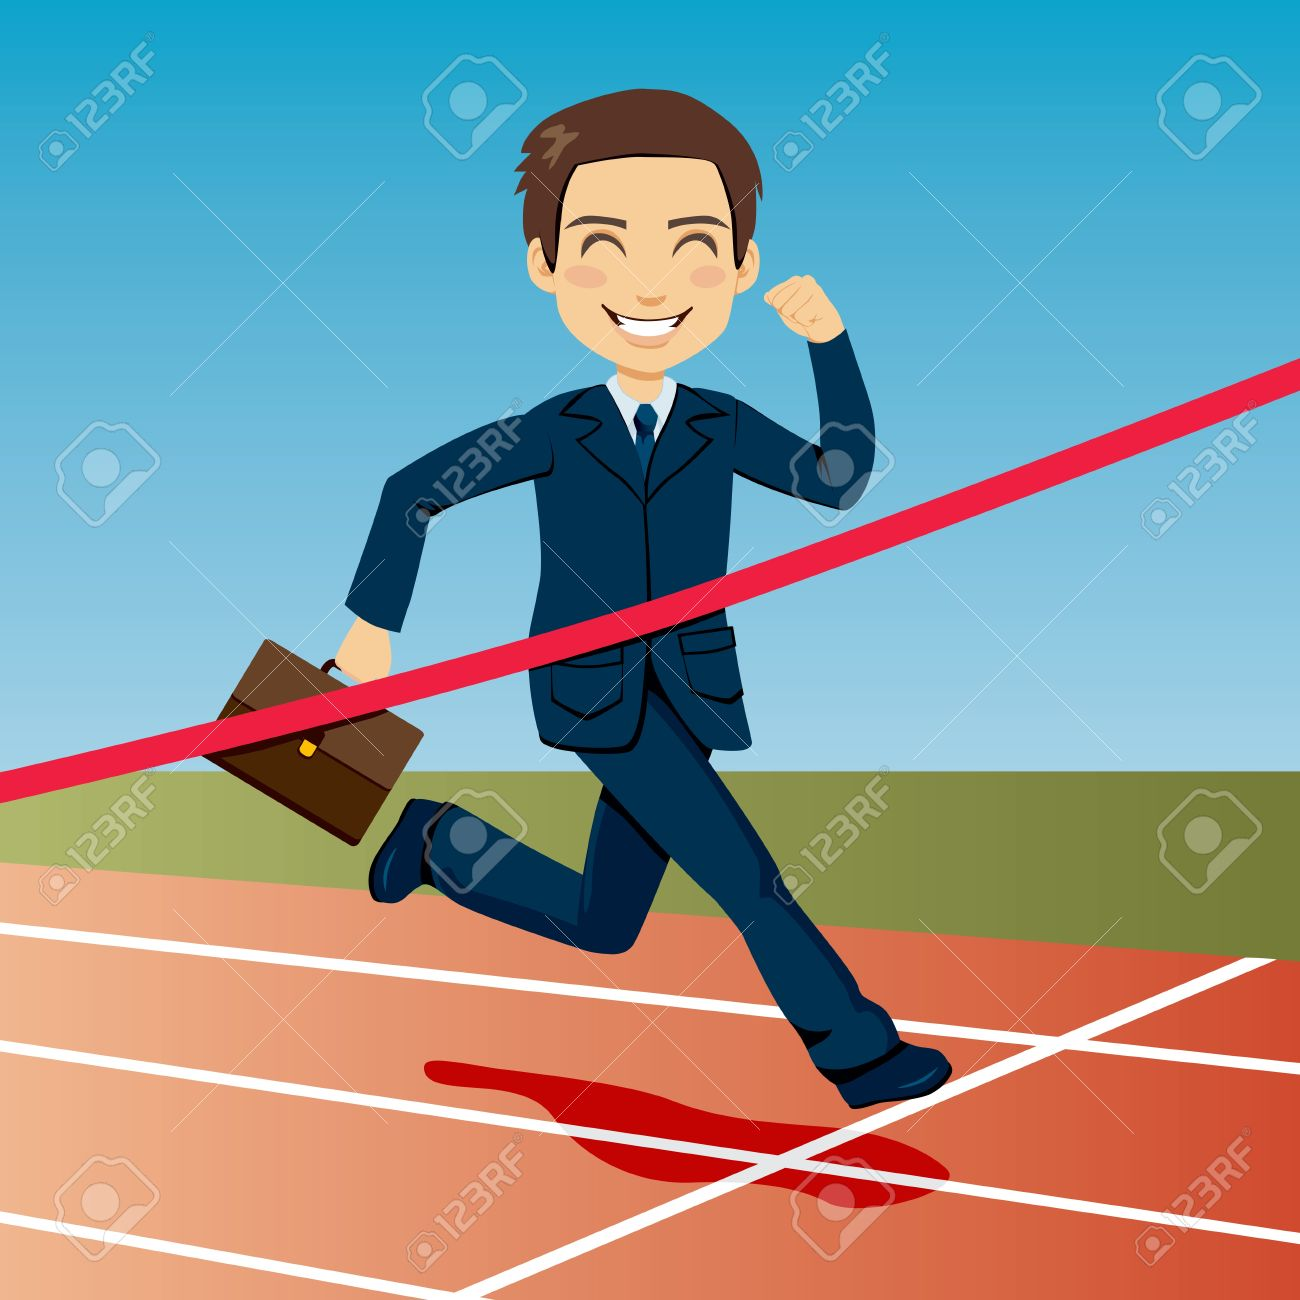 Successful businessman arriving first at finish line winning Stock Vector - 13214393